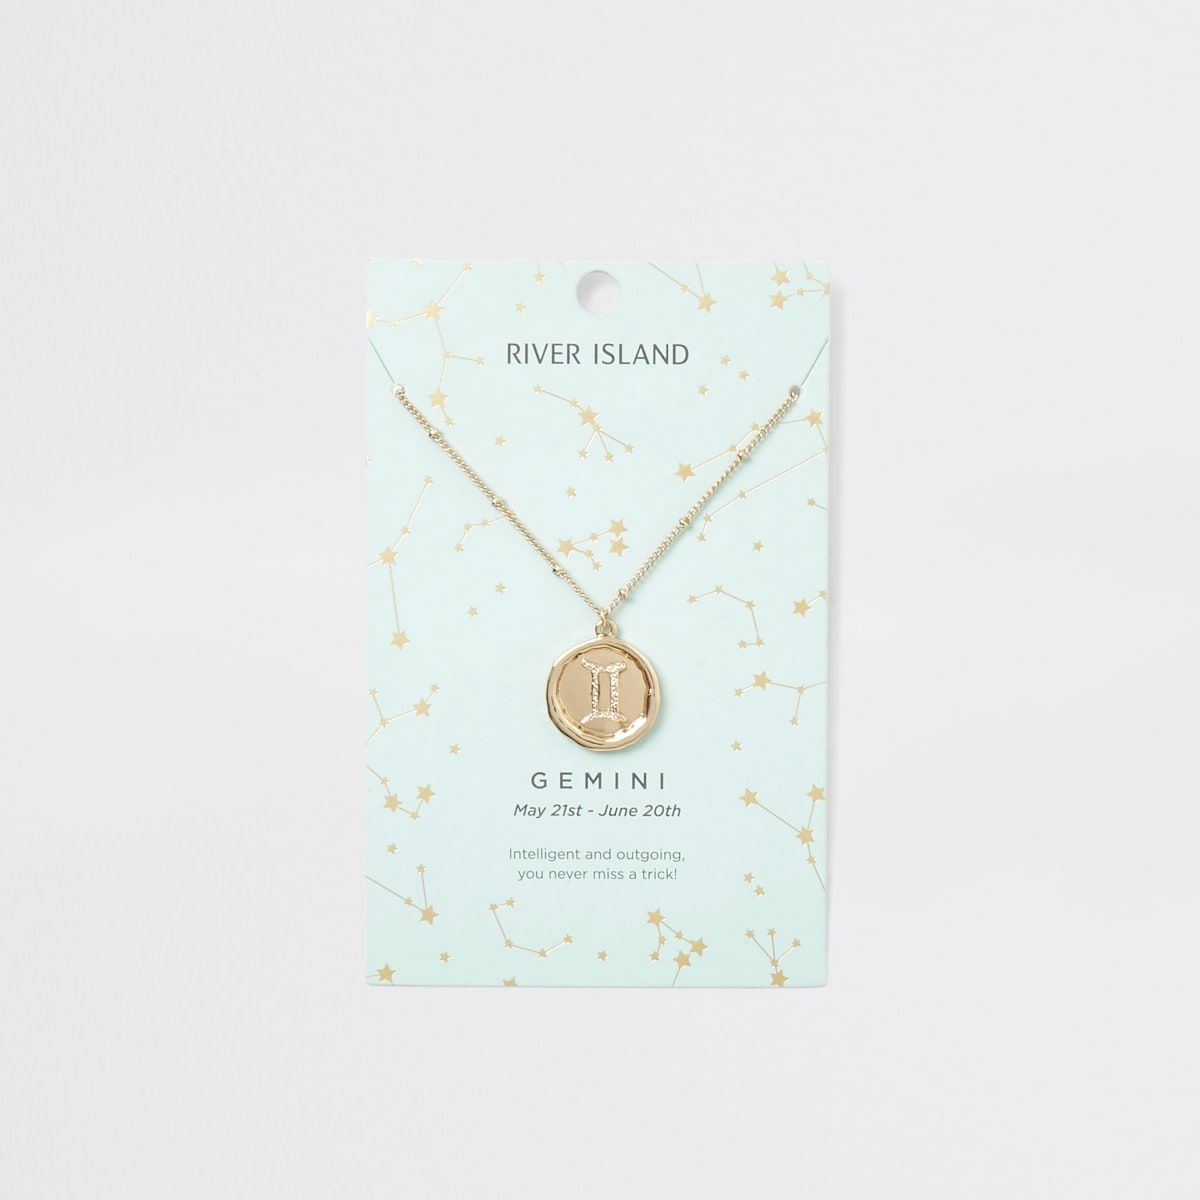 Gemini zodiac sign gold colour necklace